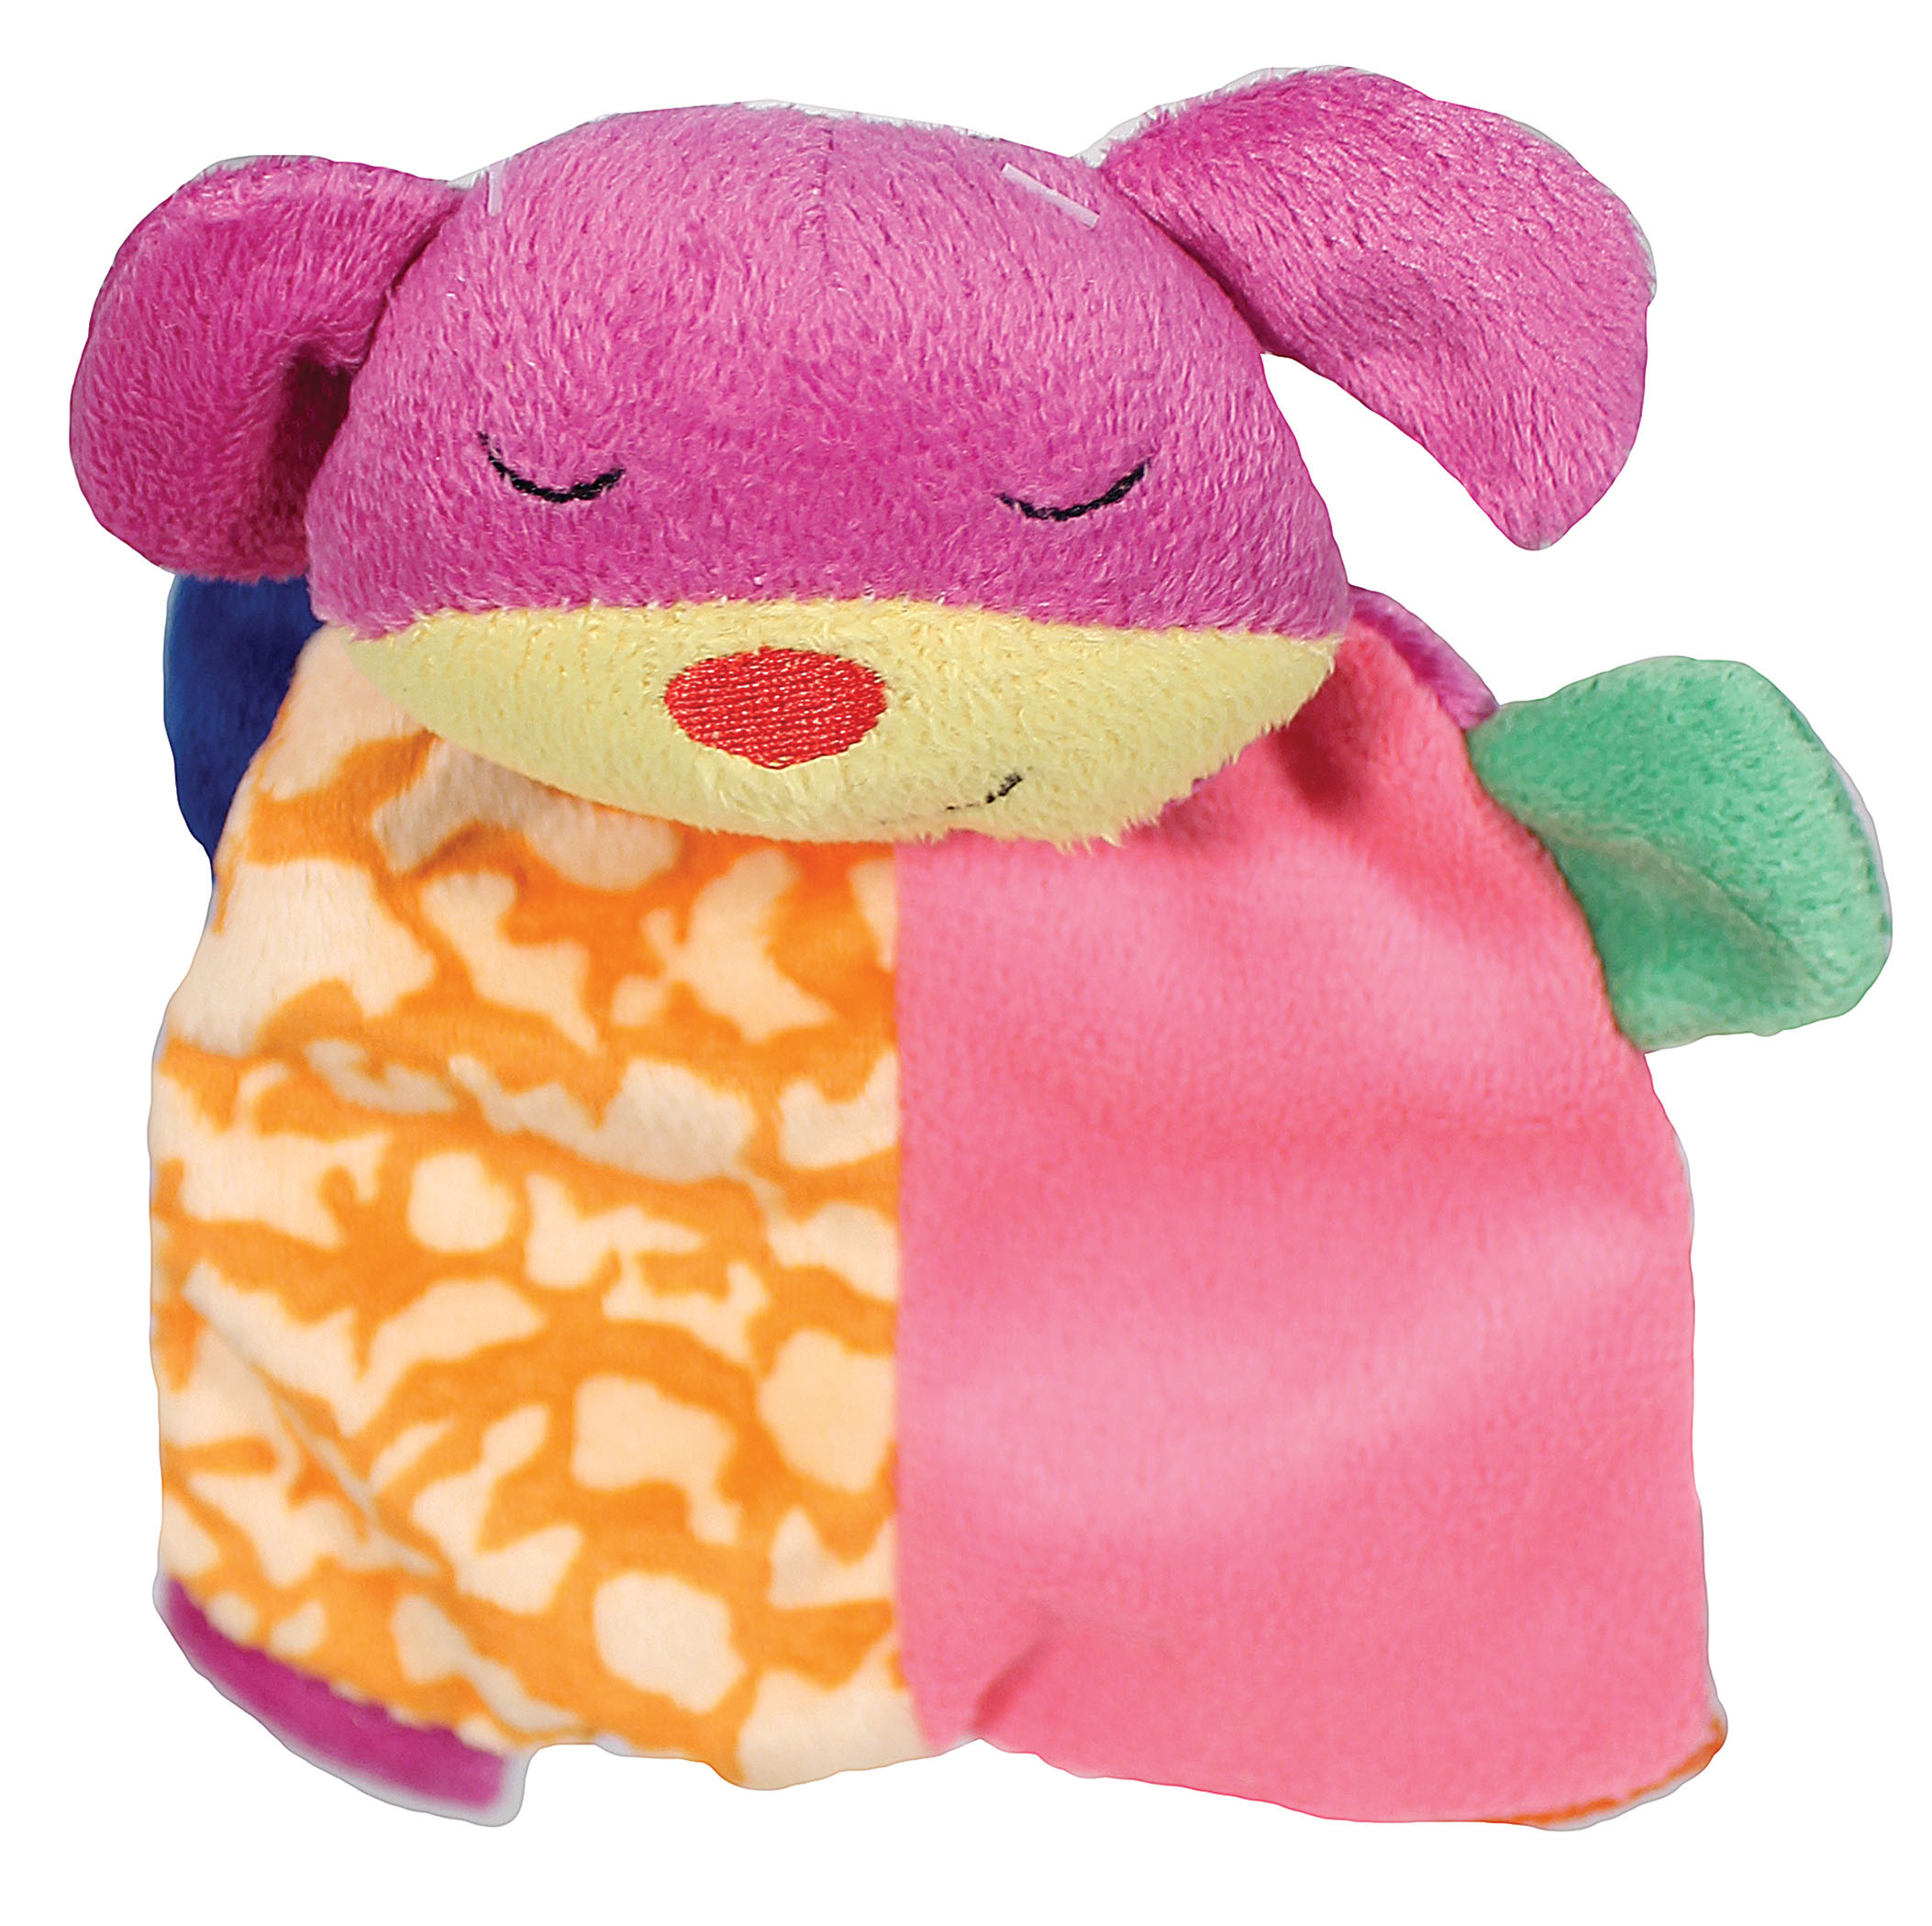 Ethical Dog-Lil Spots Plush Blanket Dog Toy- Assorted 7 In